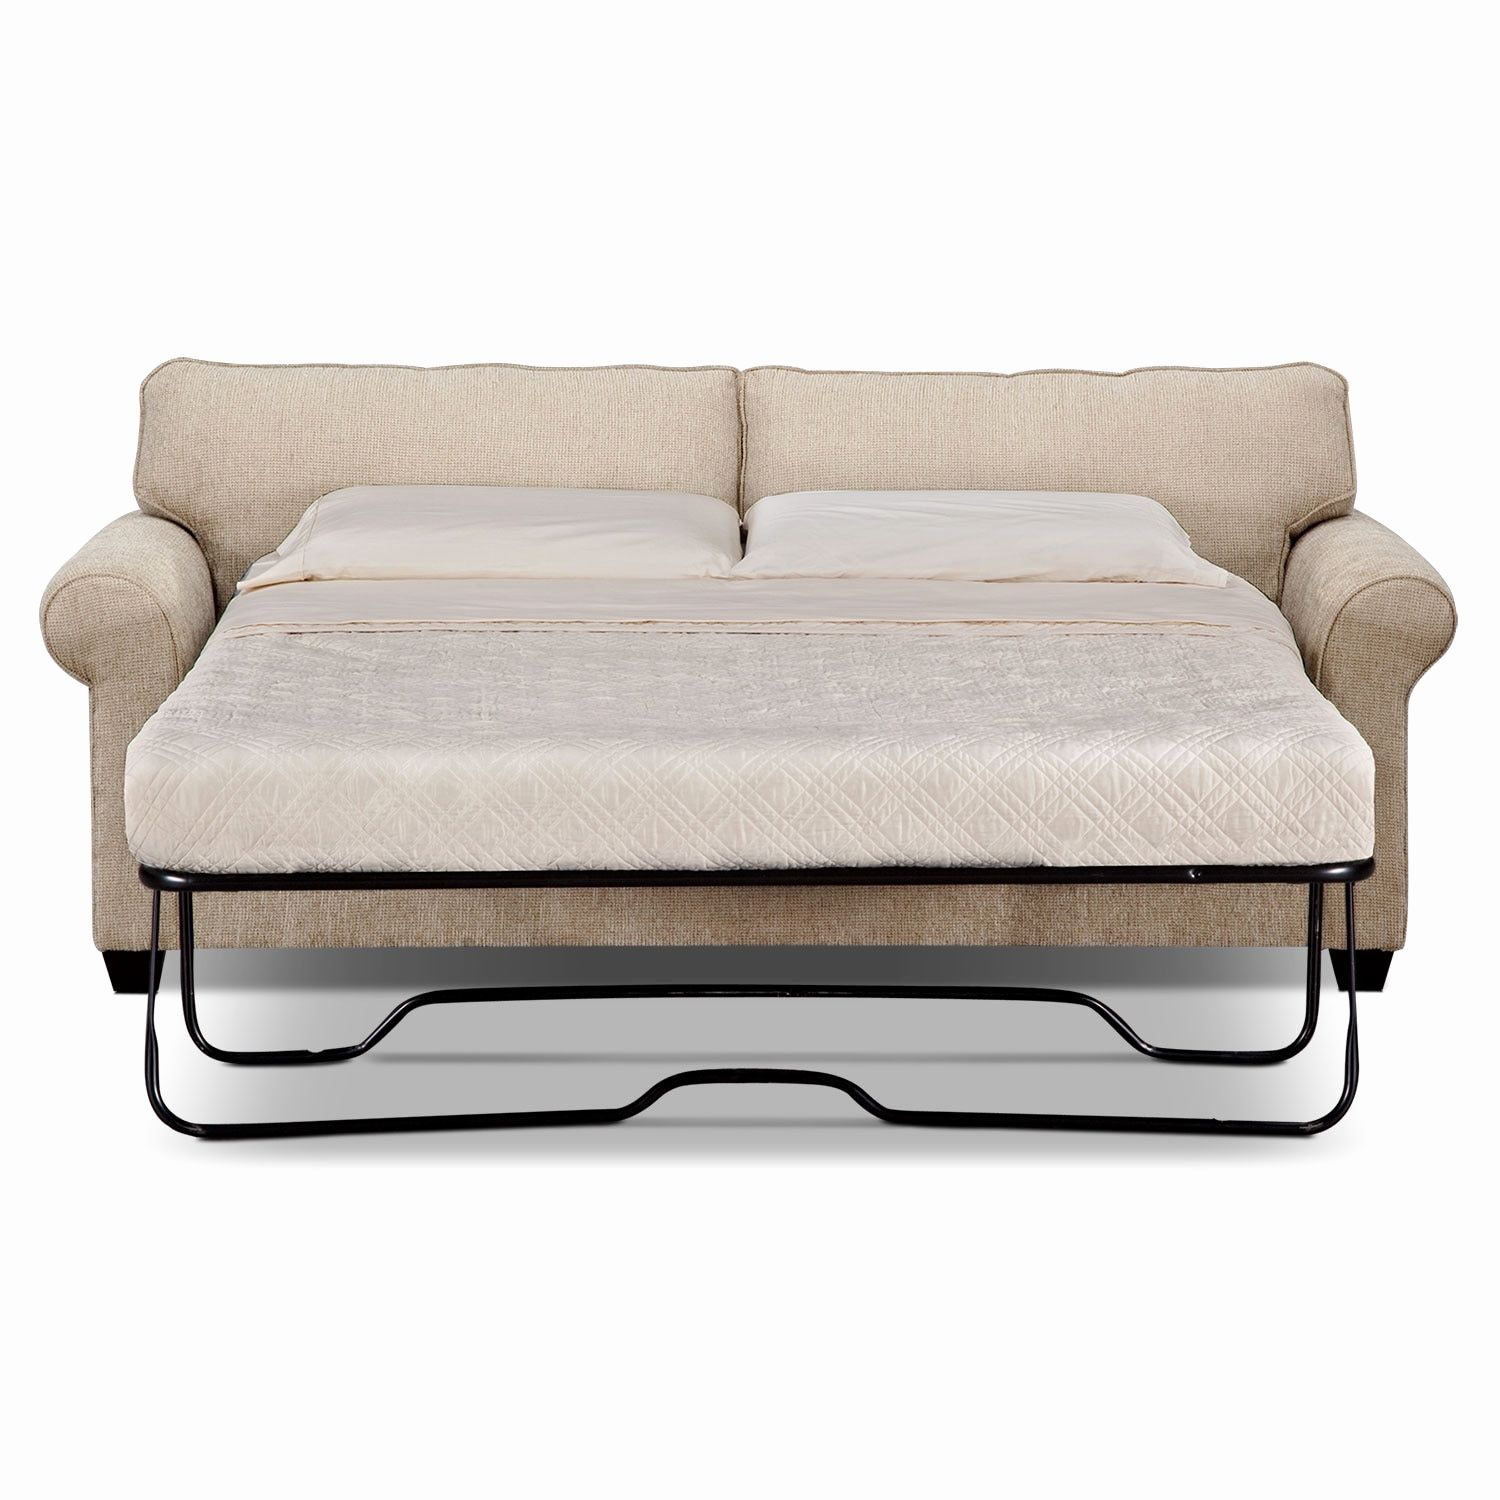 Inspirational Ikea Sleeper Sofa Pics Unique Decorating Loveseat How Much Is